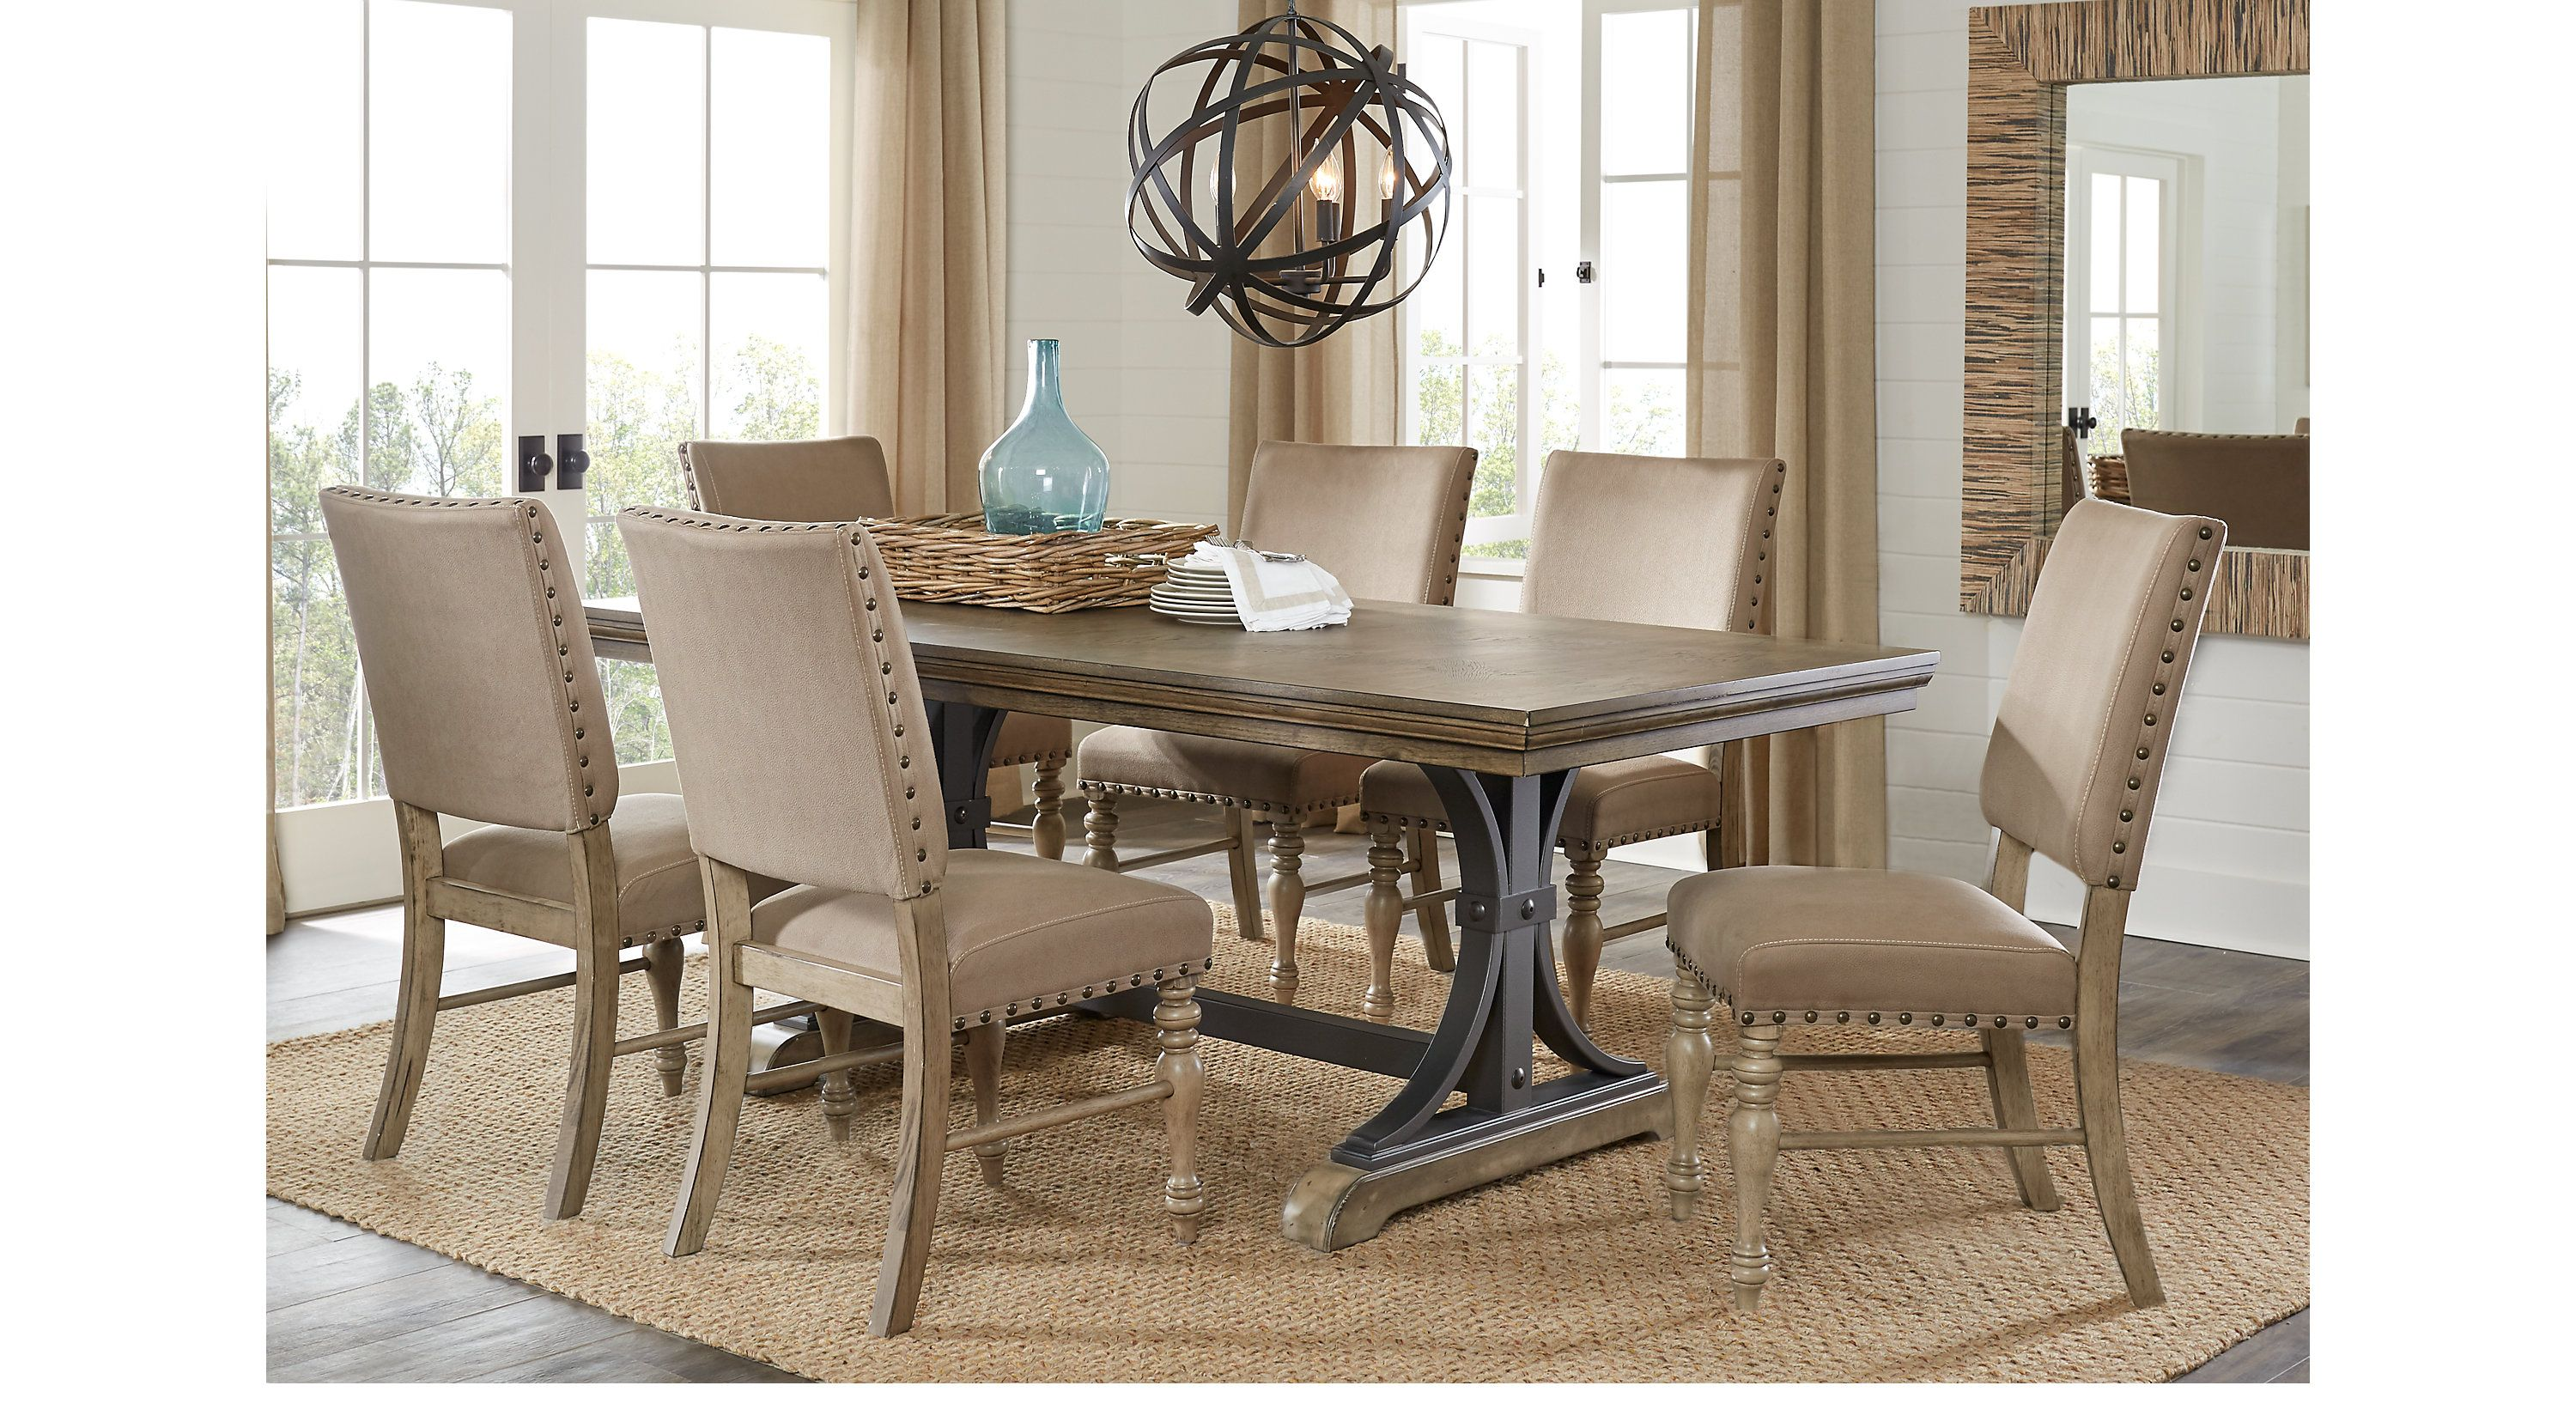 Sierra Vista Driftwood 5 Pc Rectangle Dining Set Dining Room Sets Light Wood Dining Room Sets Rooms To Go Furniture Rooms To Go